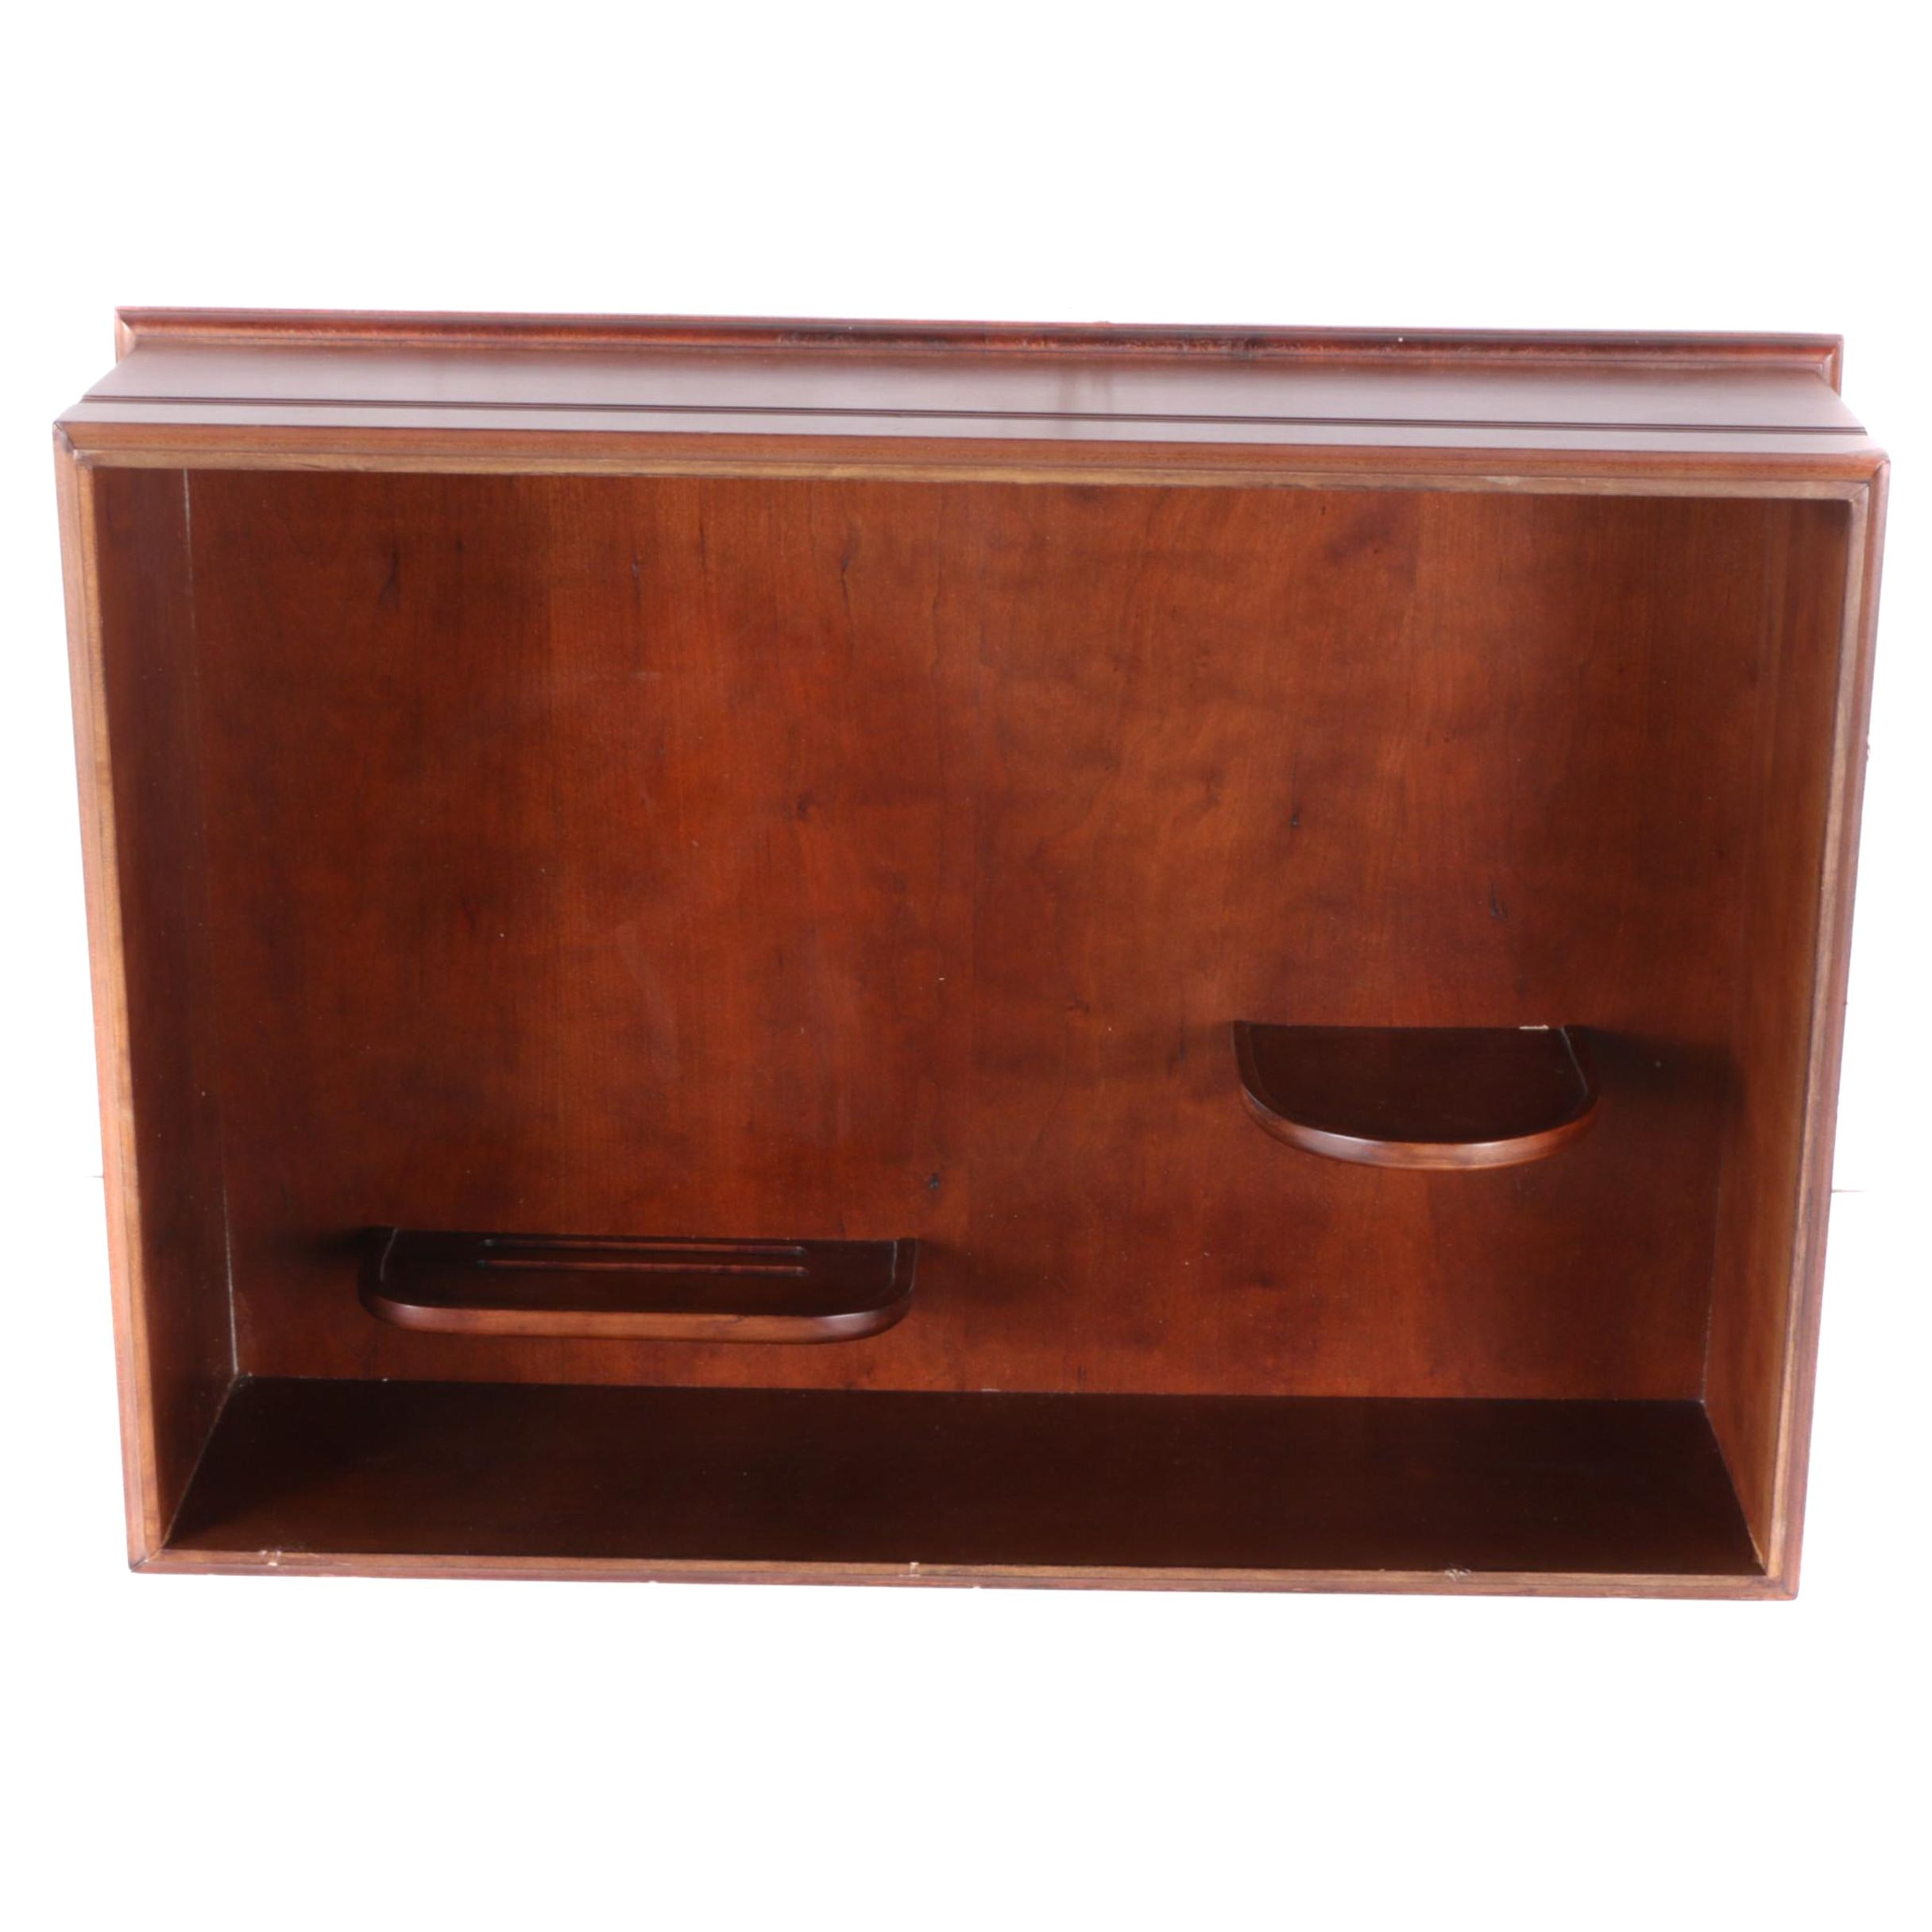 Kurt Clement 1978 Wooden Display Cabinet